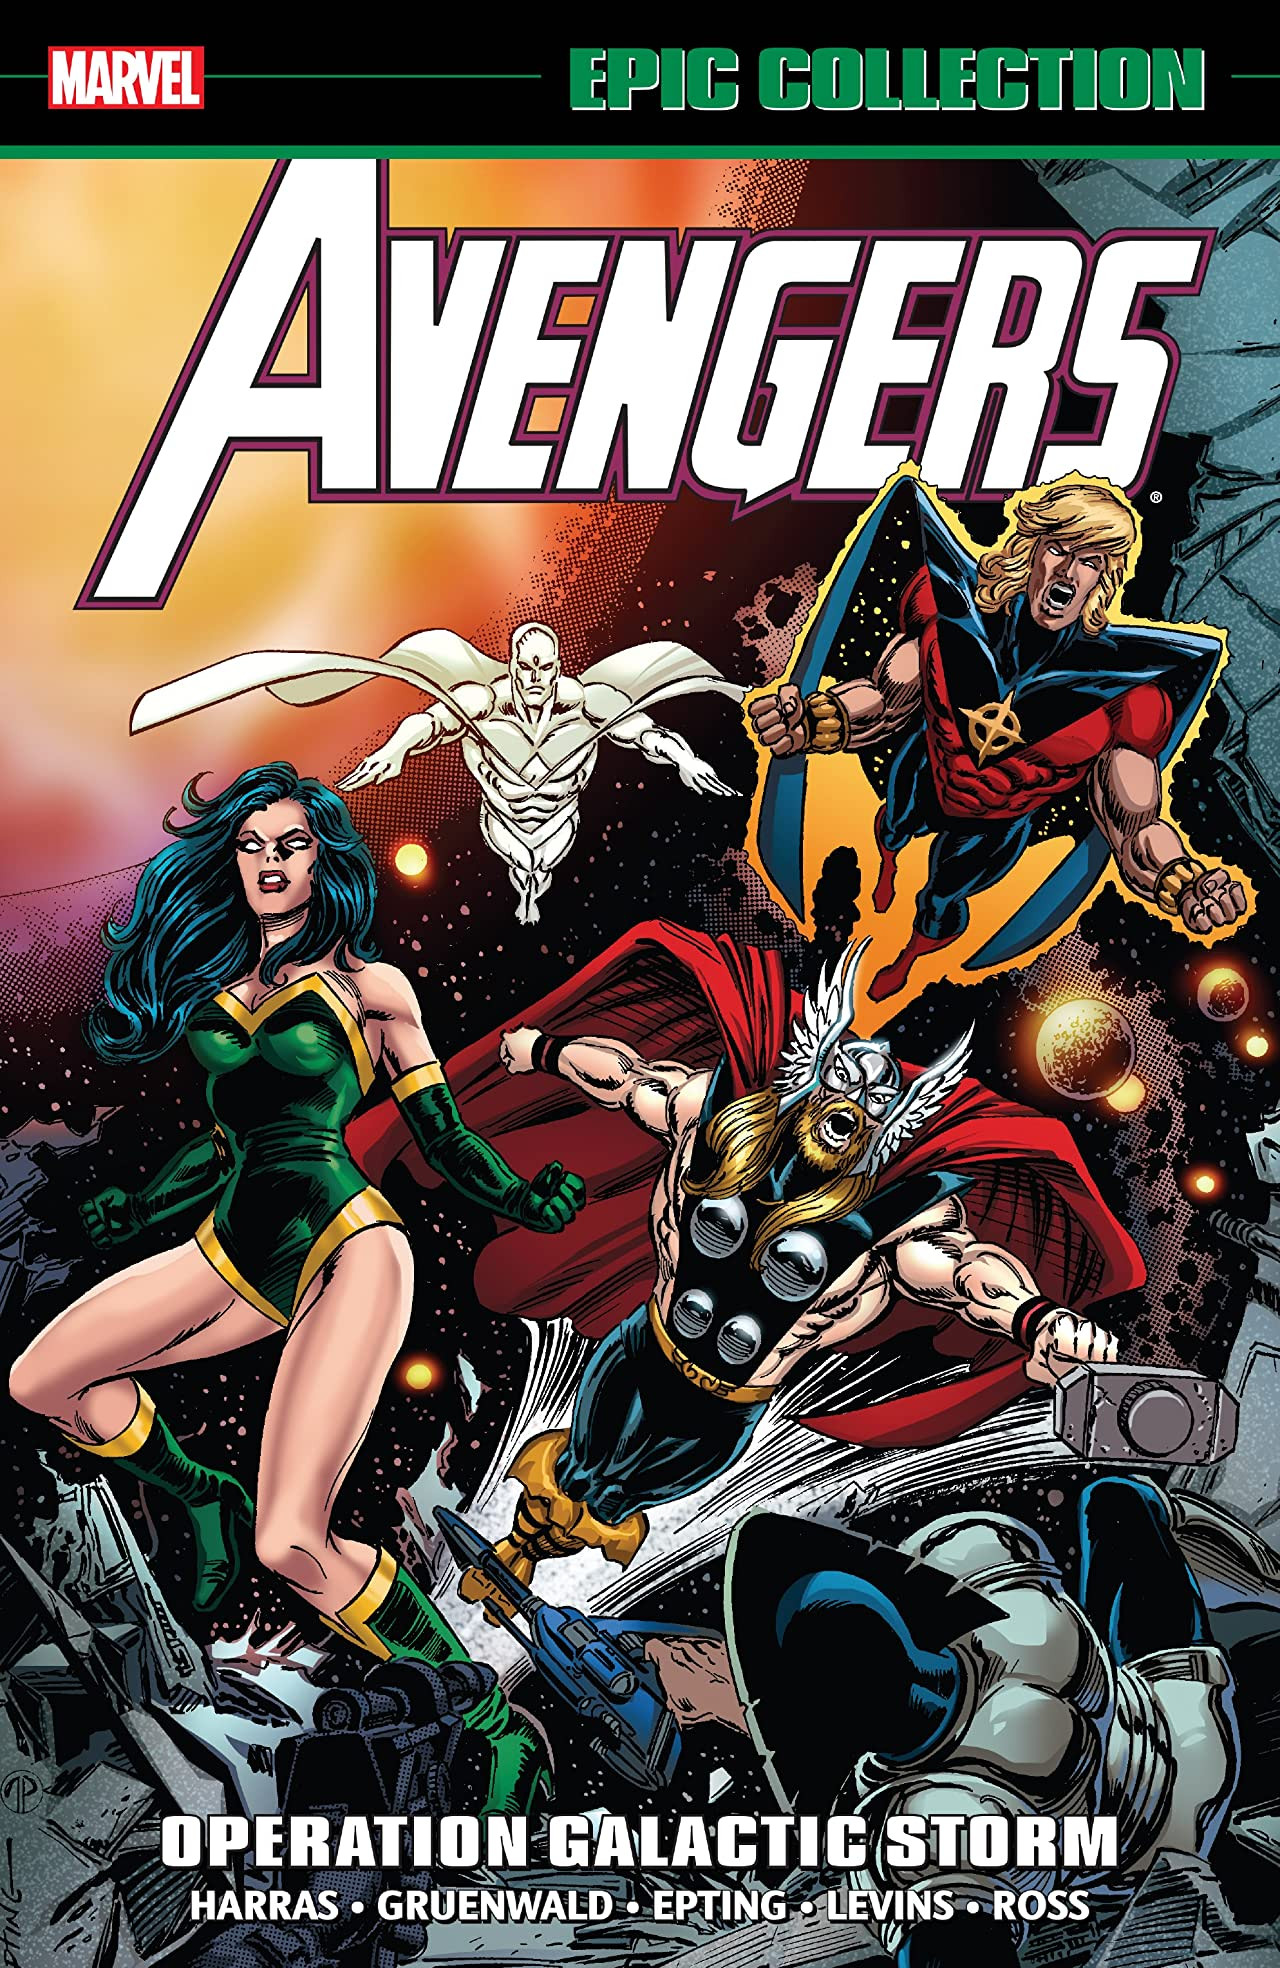 Epic Collection: Avengers Vol 1 22